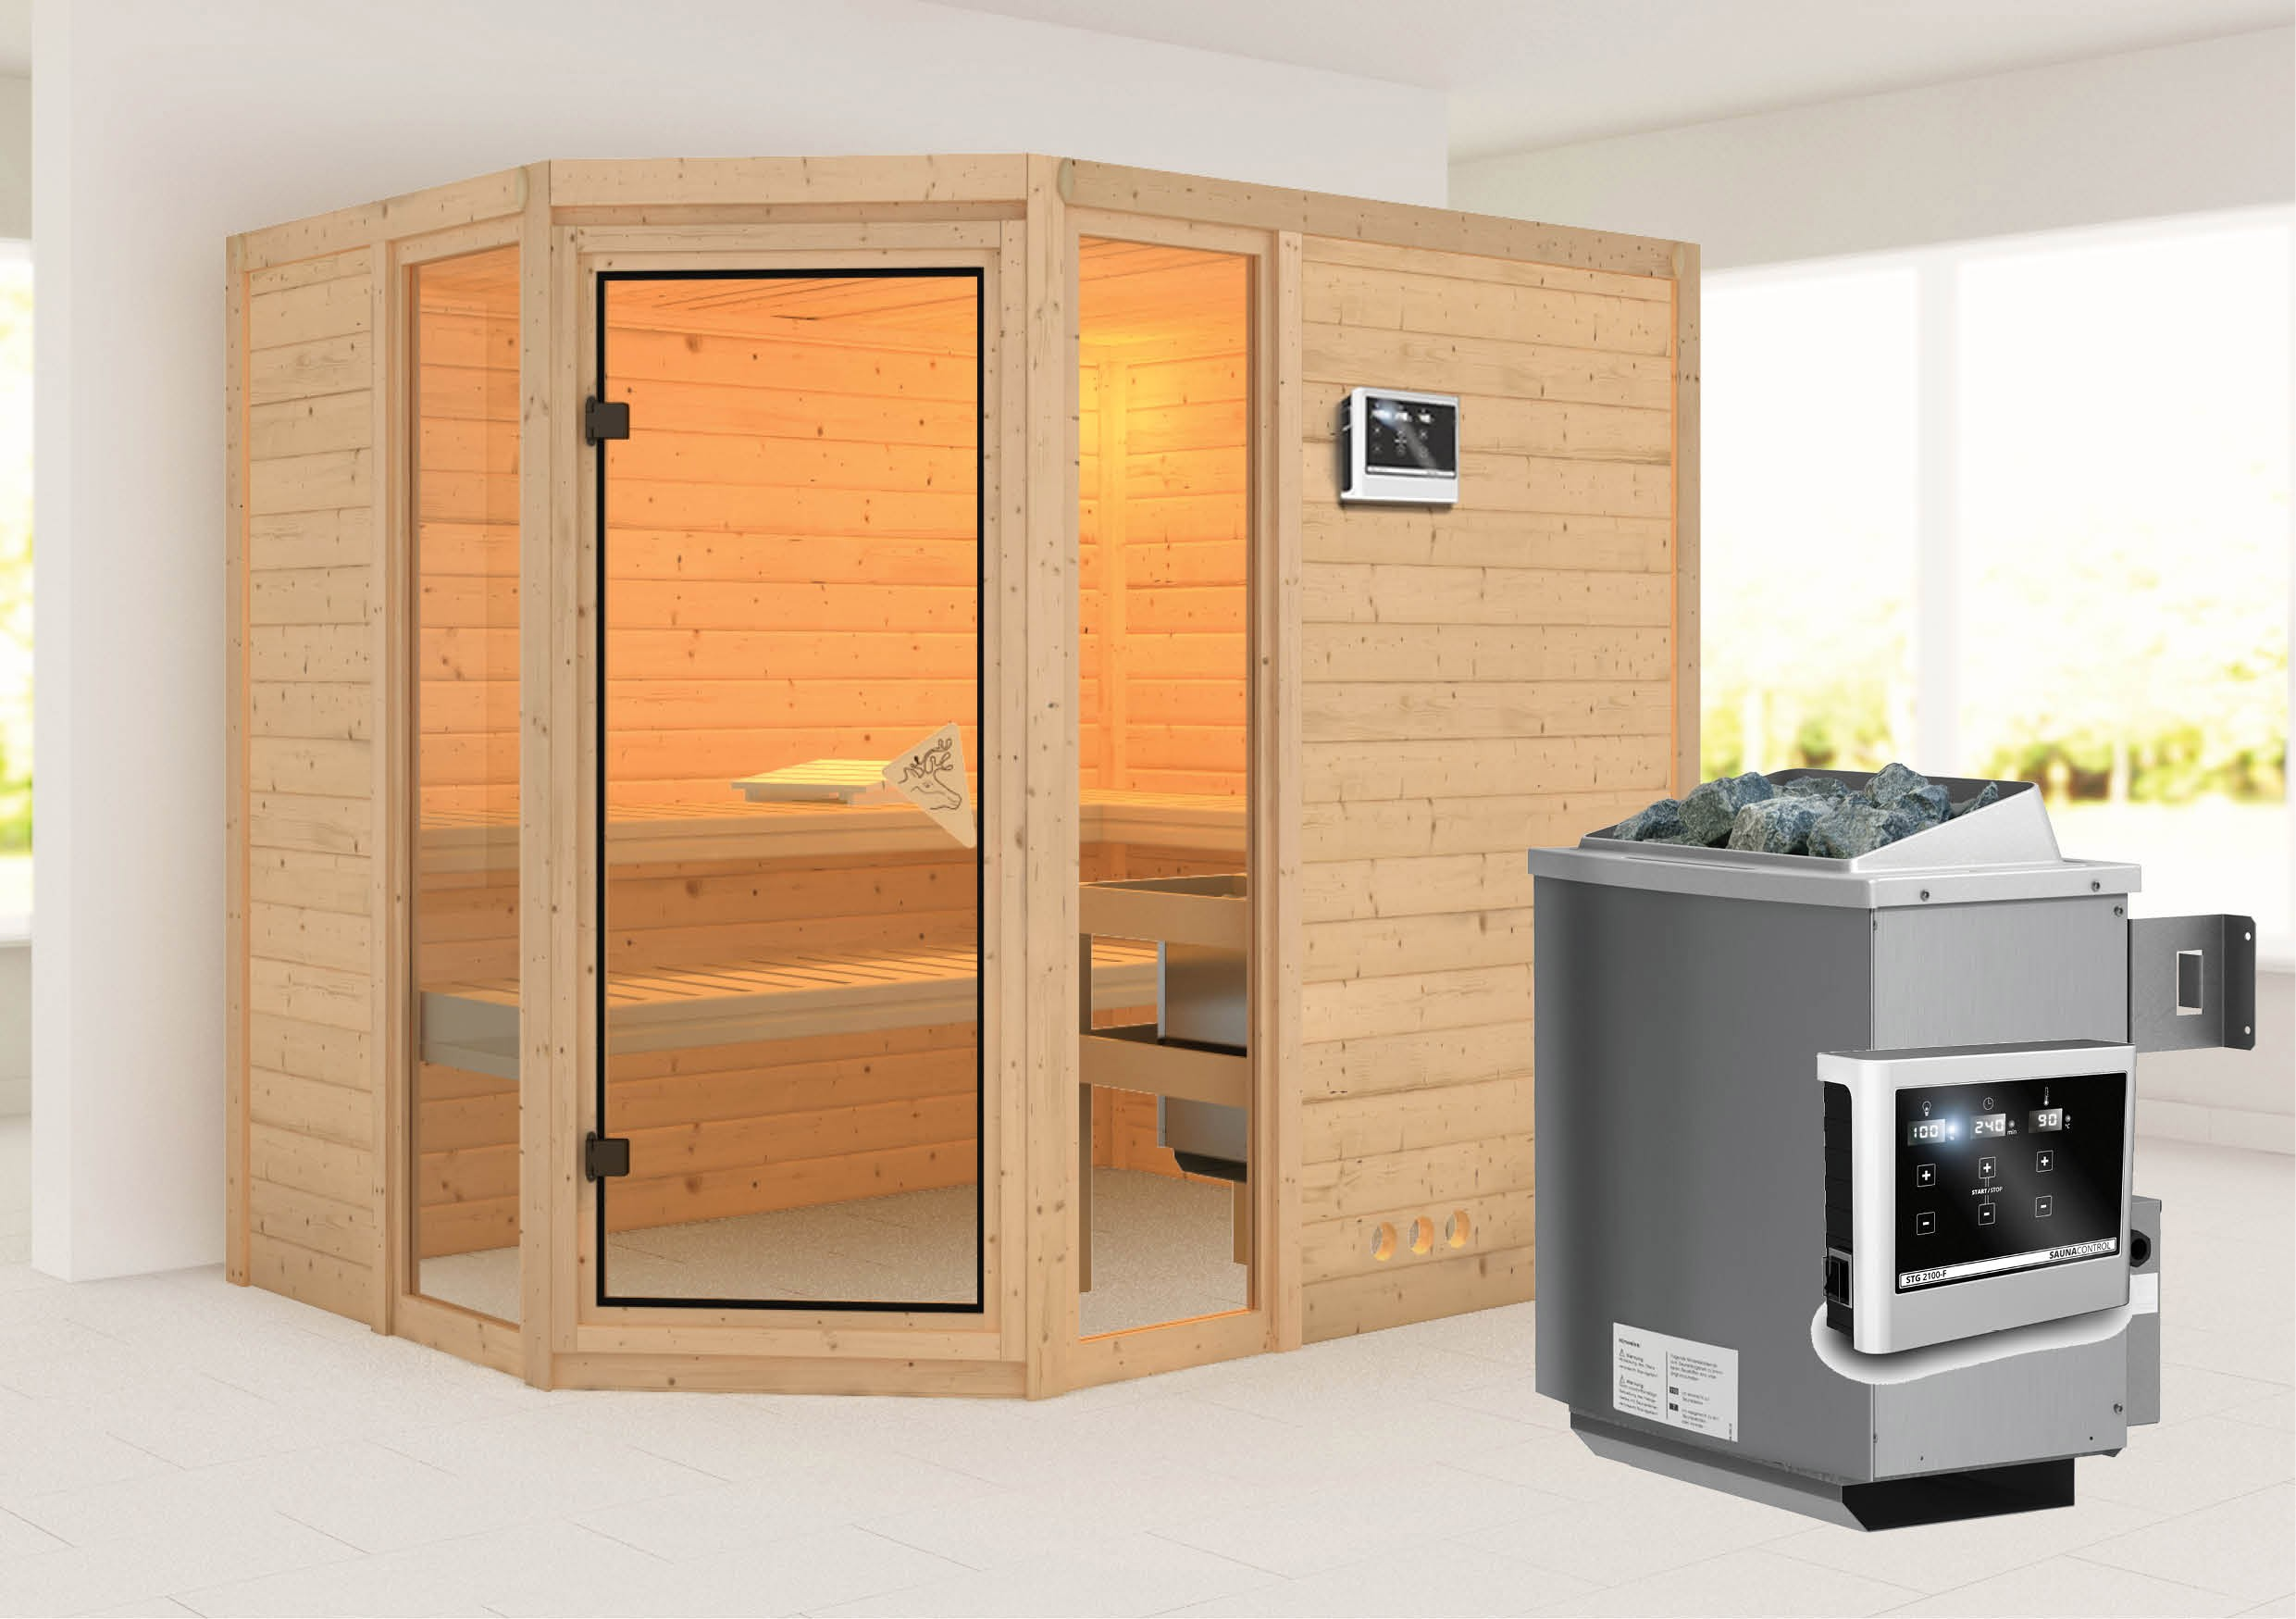 karibu sauna sinai 3 massivholz 40mm mit saunaofen 9kw bei. Black Bedroom Furniture Sets. Home Design Ideas